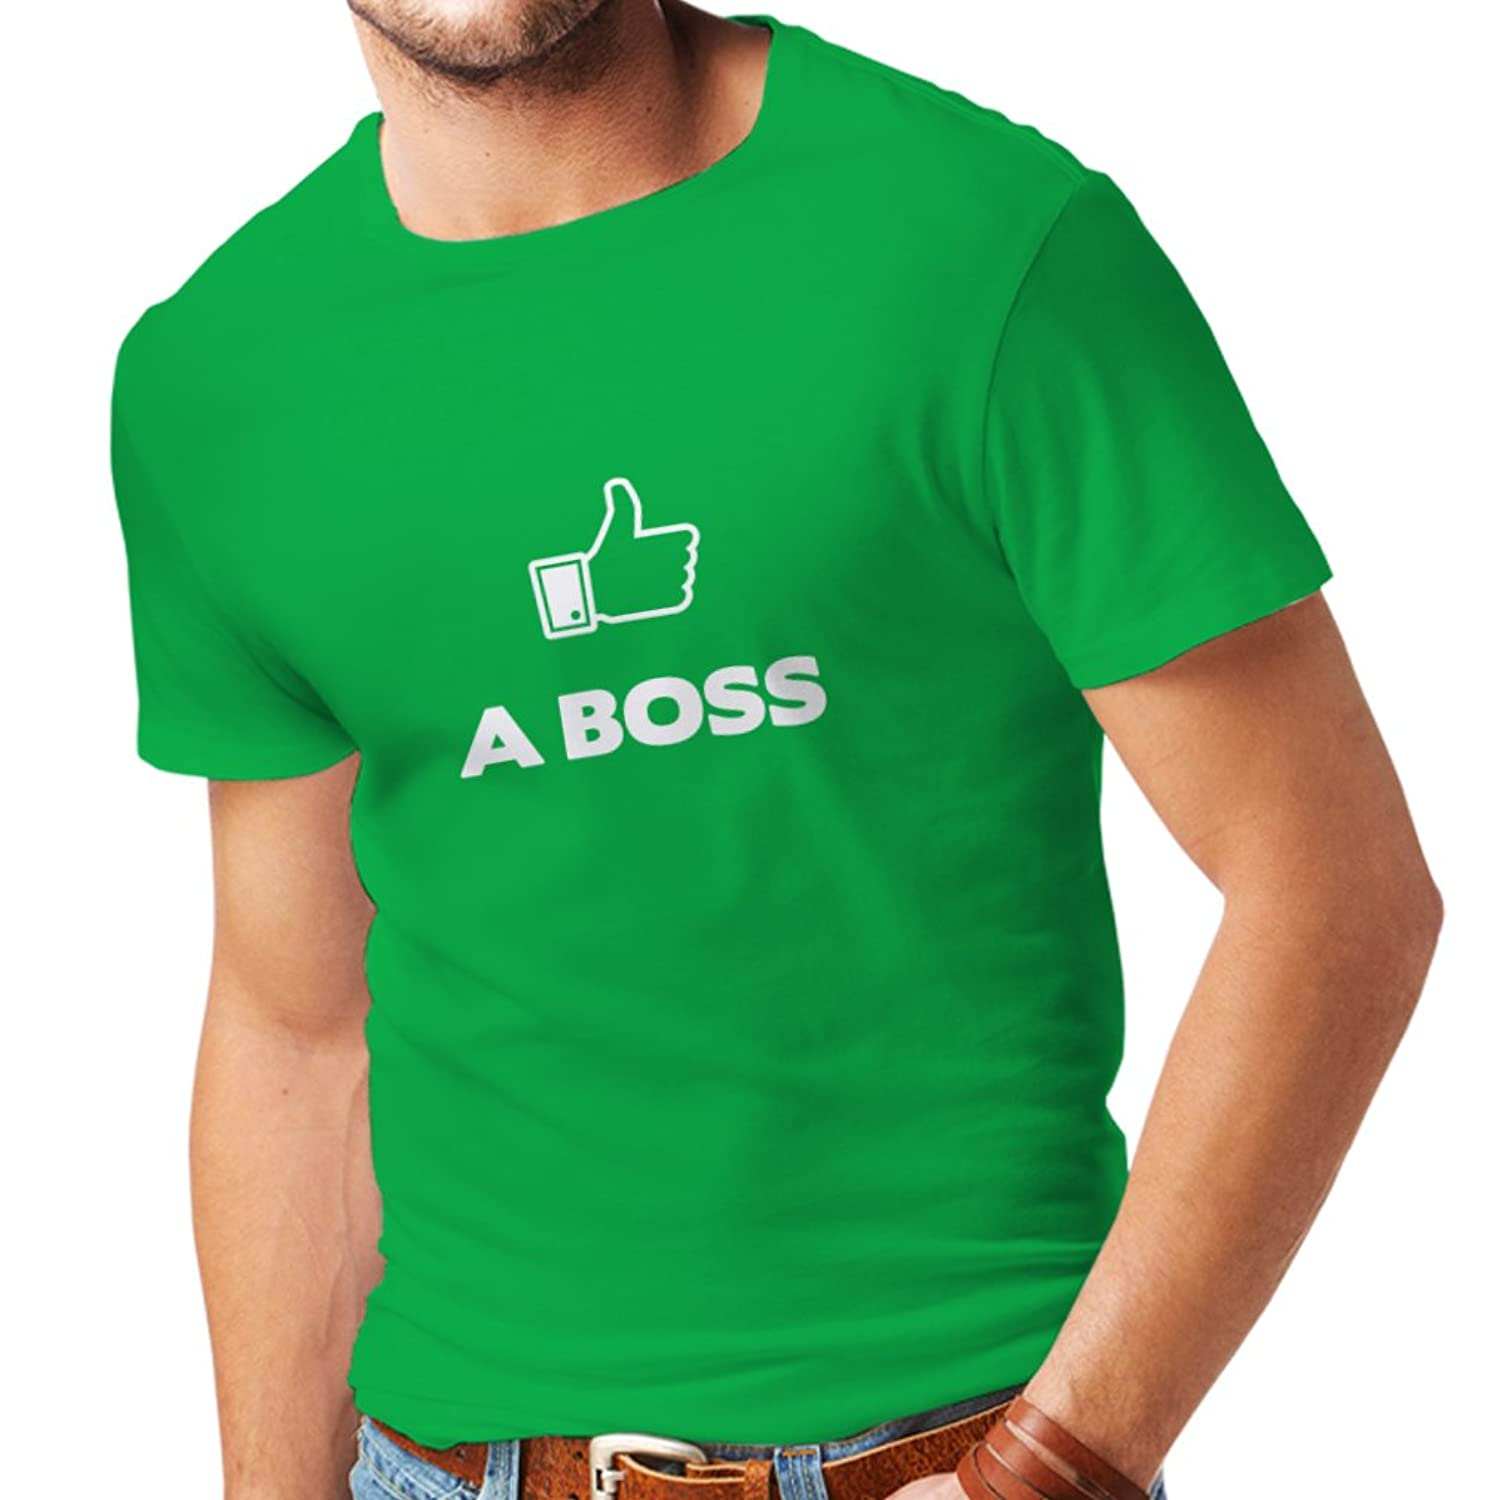 N4100 Like a Boss funny gift t-shirt